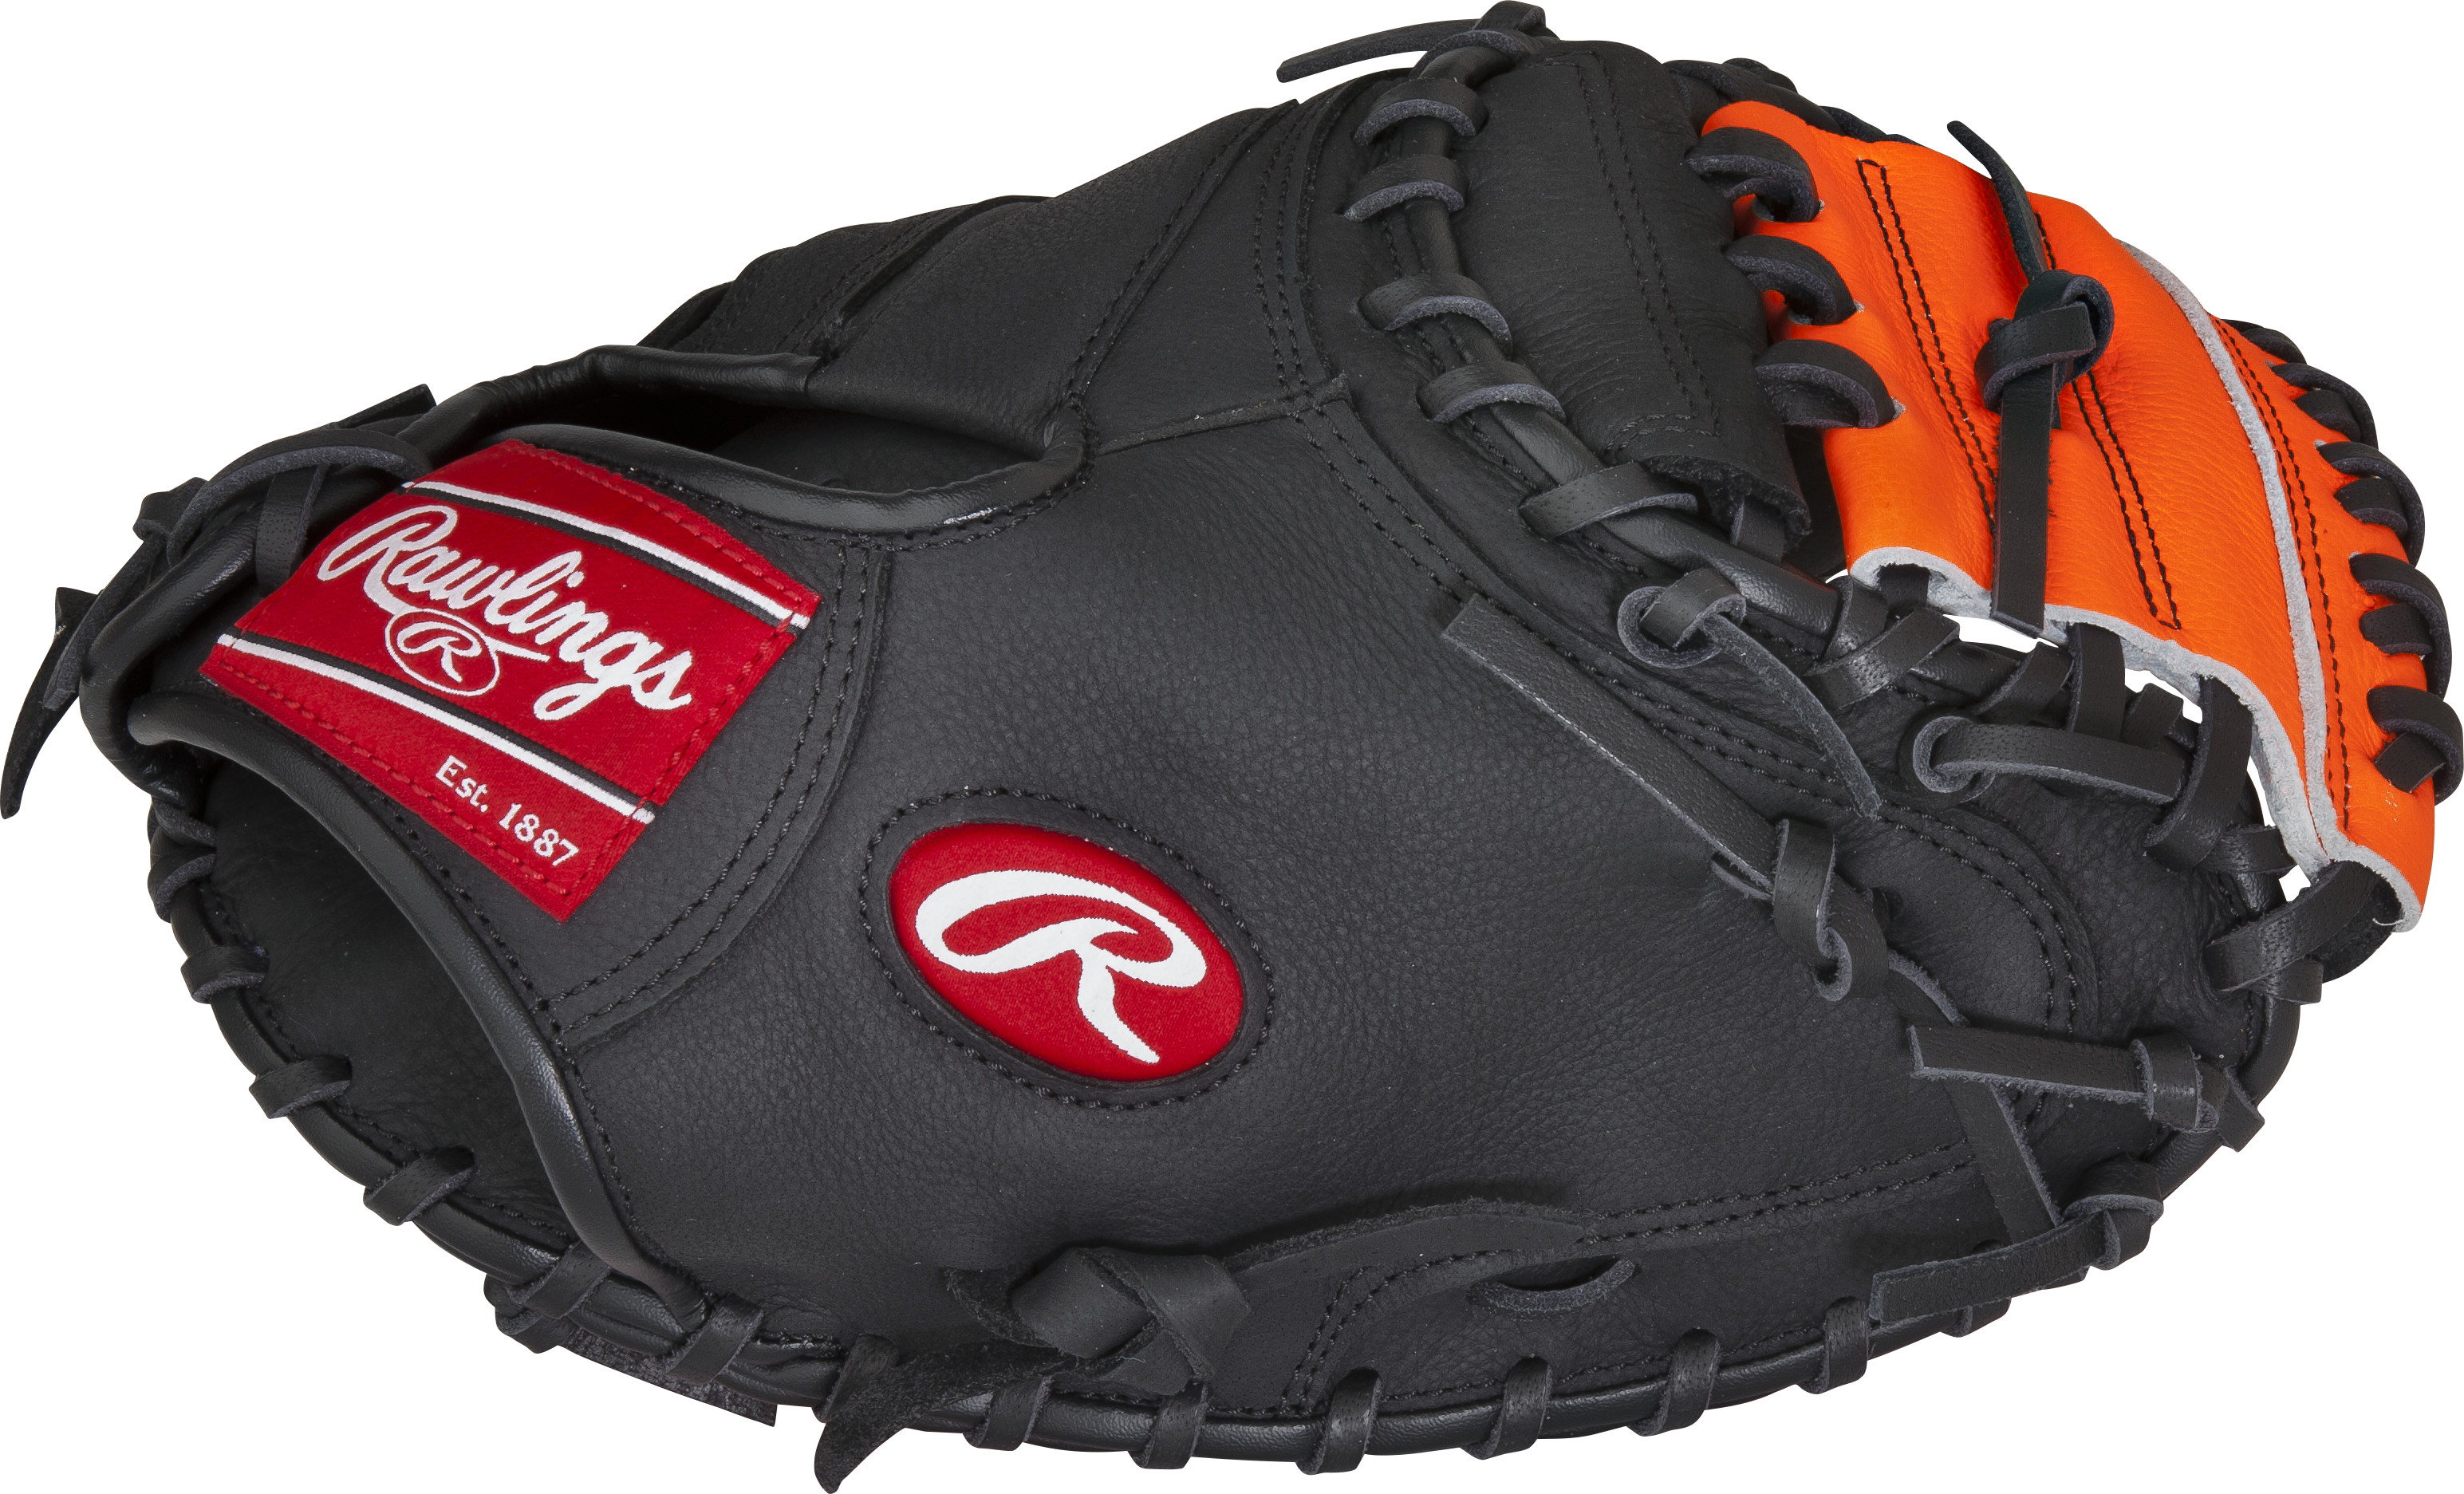 http://www.bestbatdeals.com/images/gloves/rawlings/PCM30T_thumb.jpg